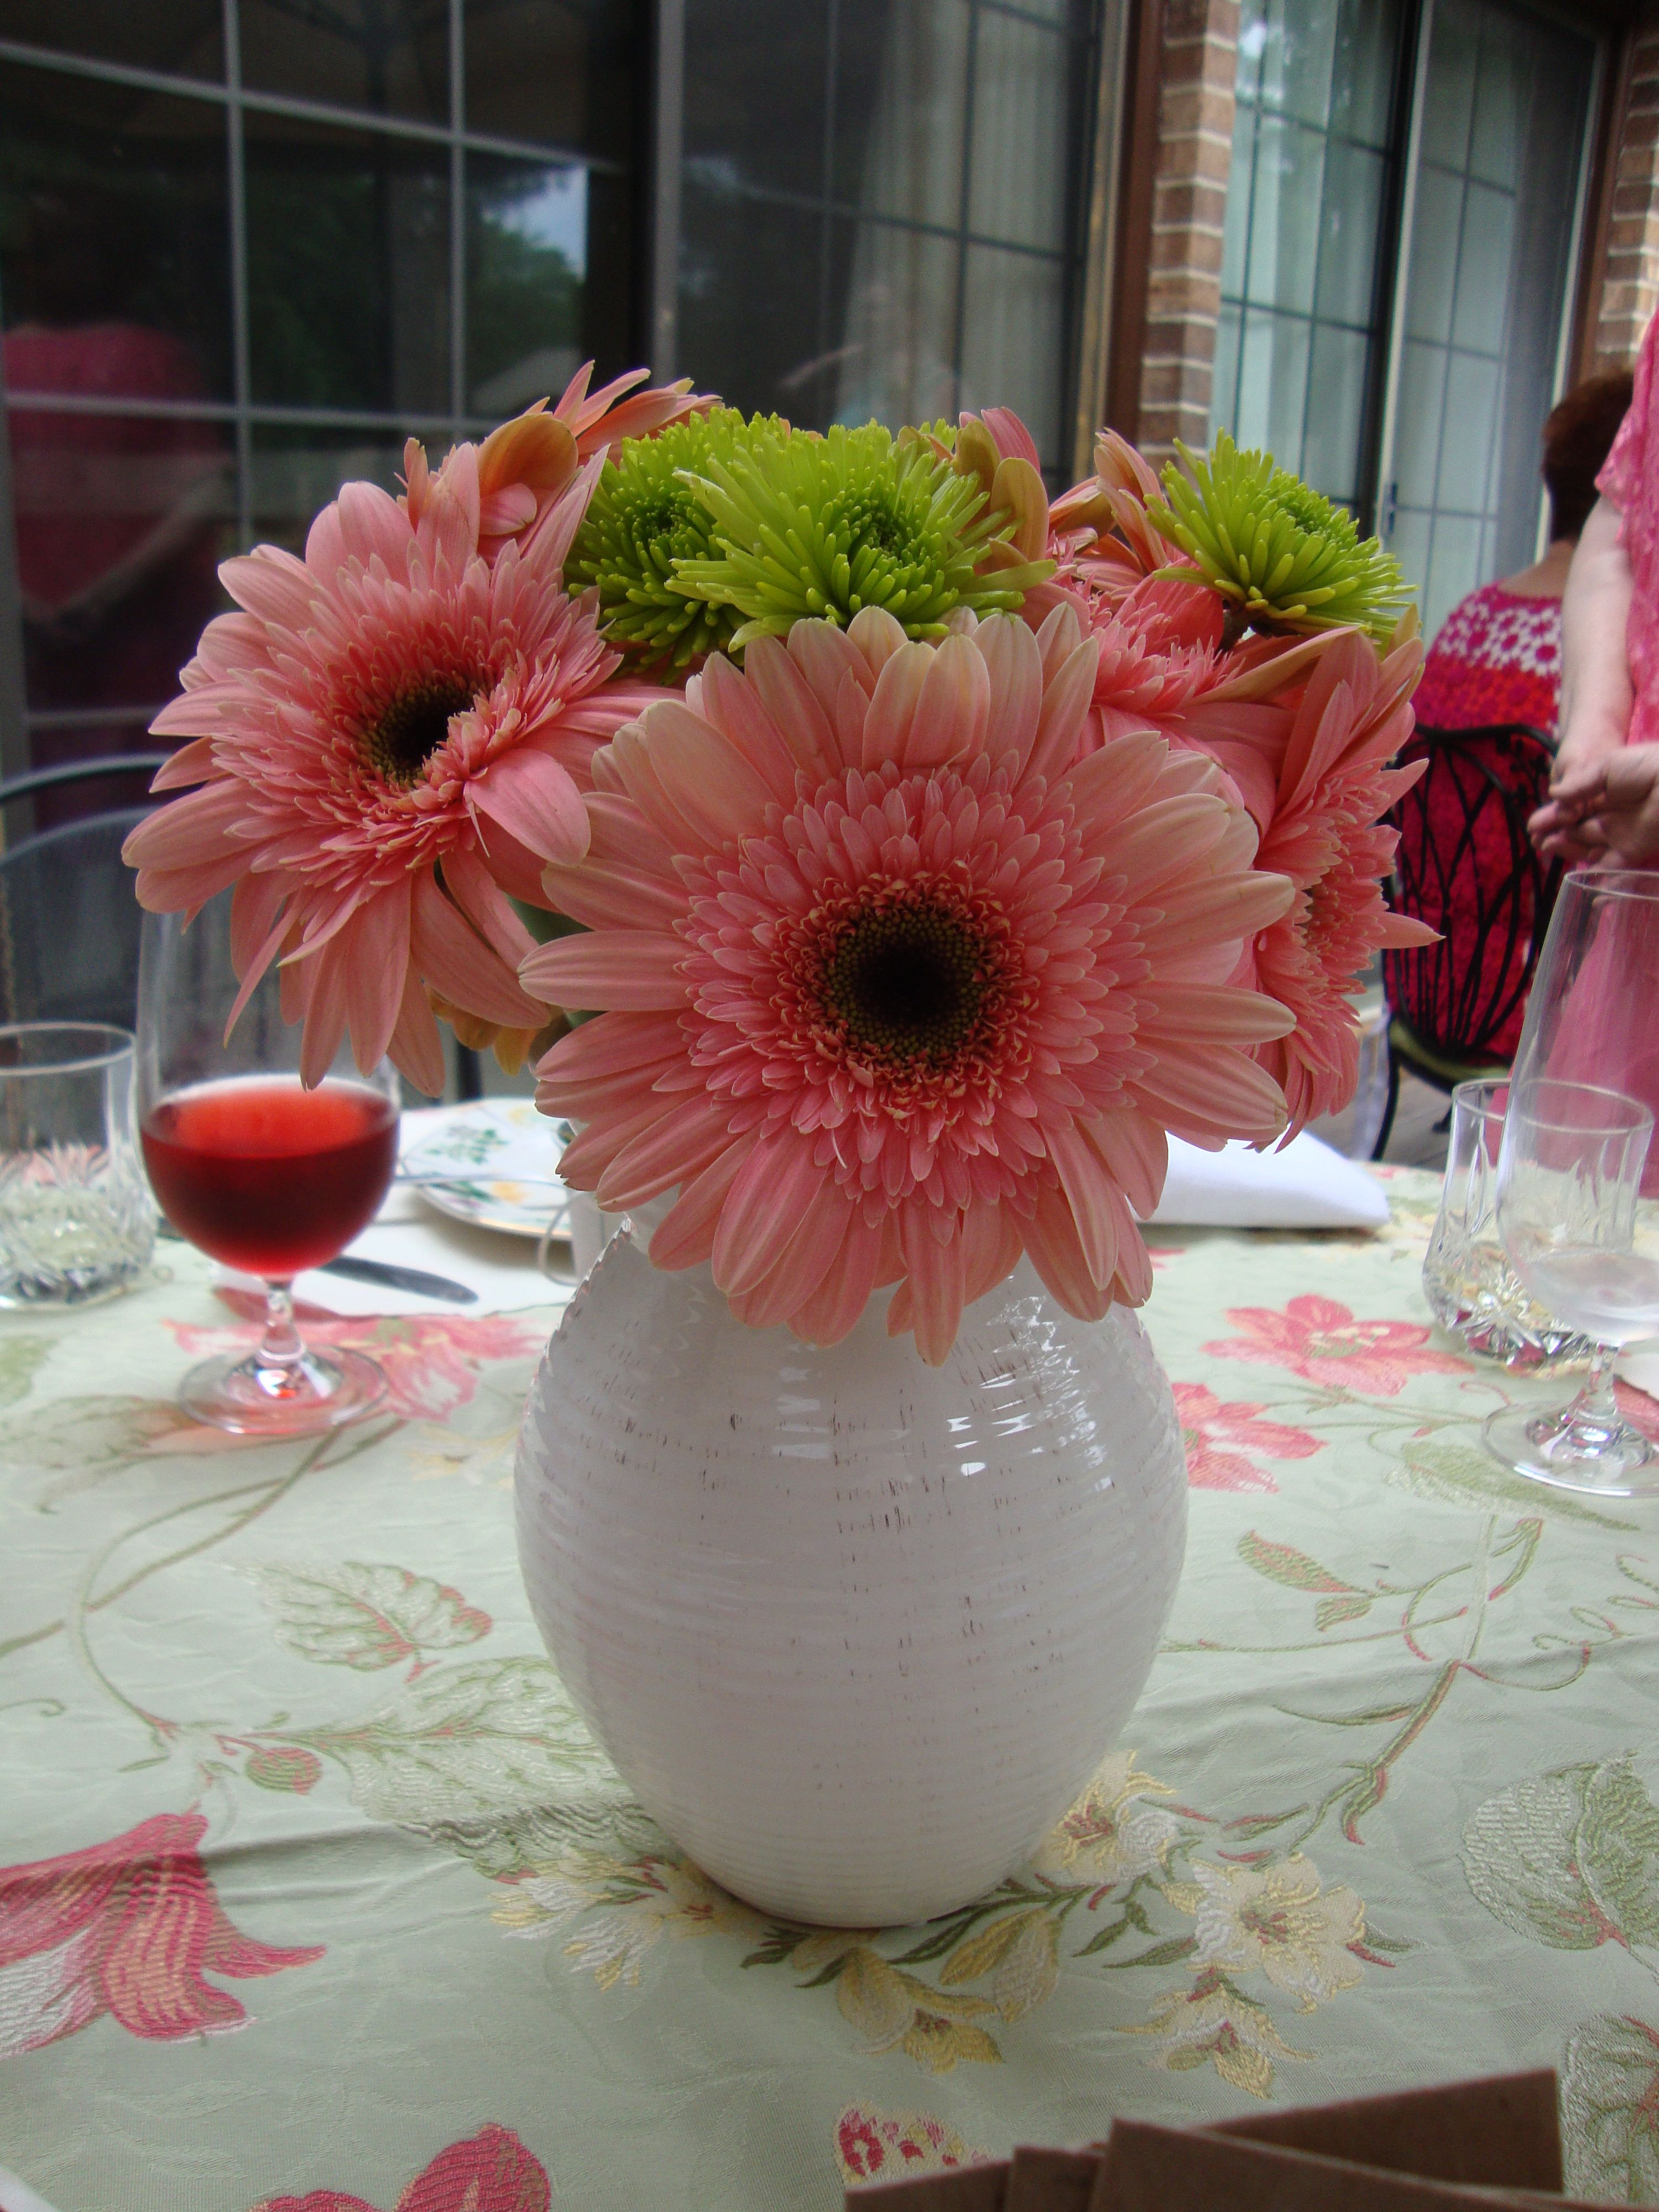 Pink gerber daisies and little green mums in a white ceramic pink gerber daisies and little green mums in a white ceramic pitcher made a great garden reviewsmspy